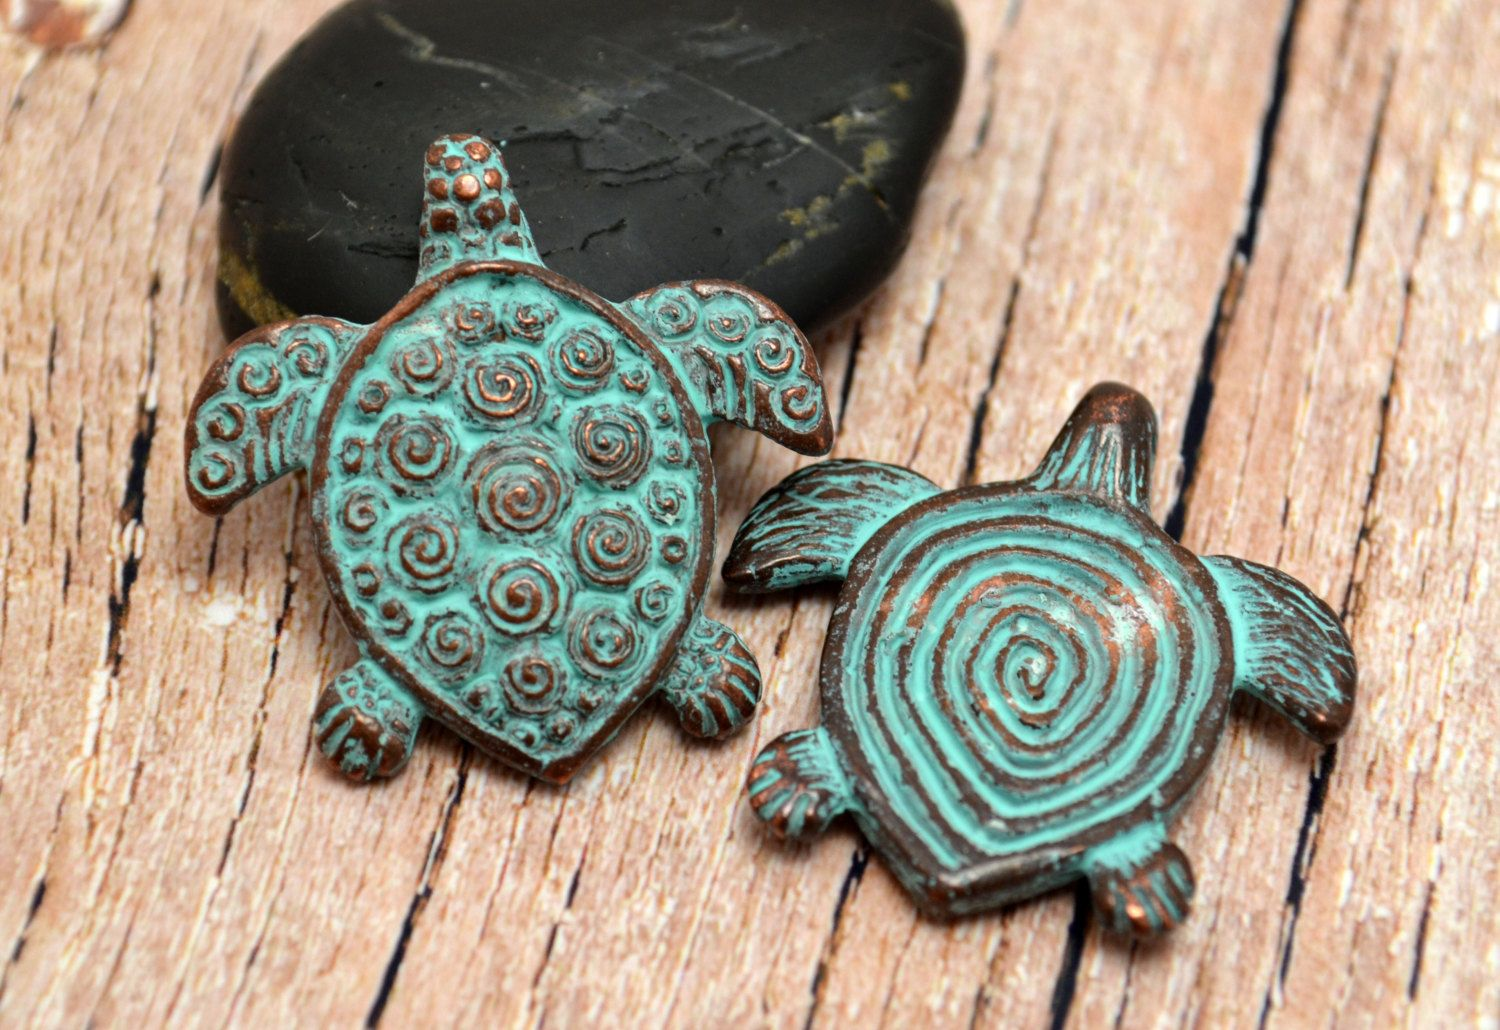 Spiral Turtle Pendant Mykonos Beads 30mm Green Patina Double Sided Pendant